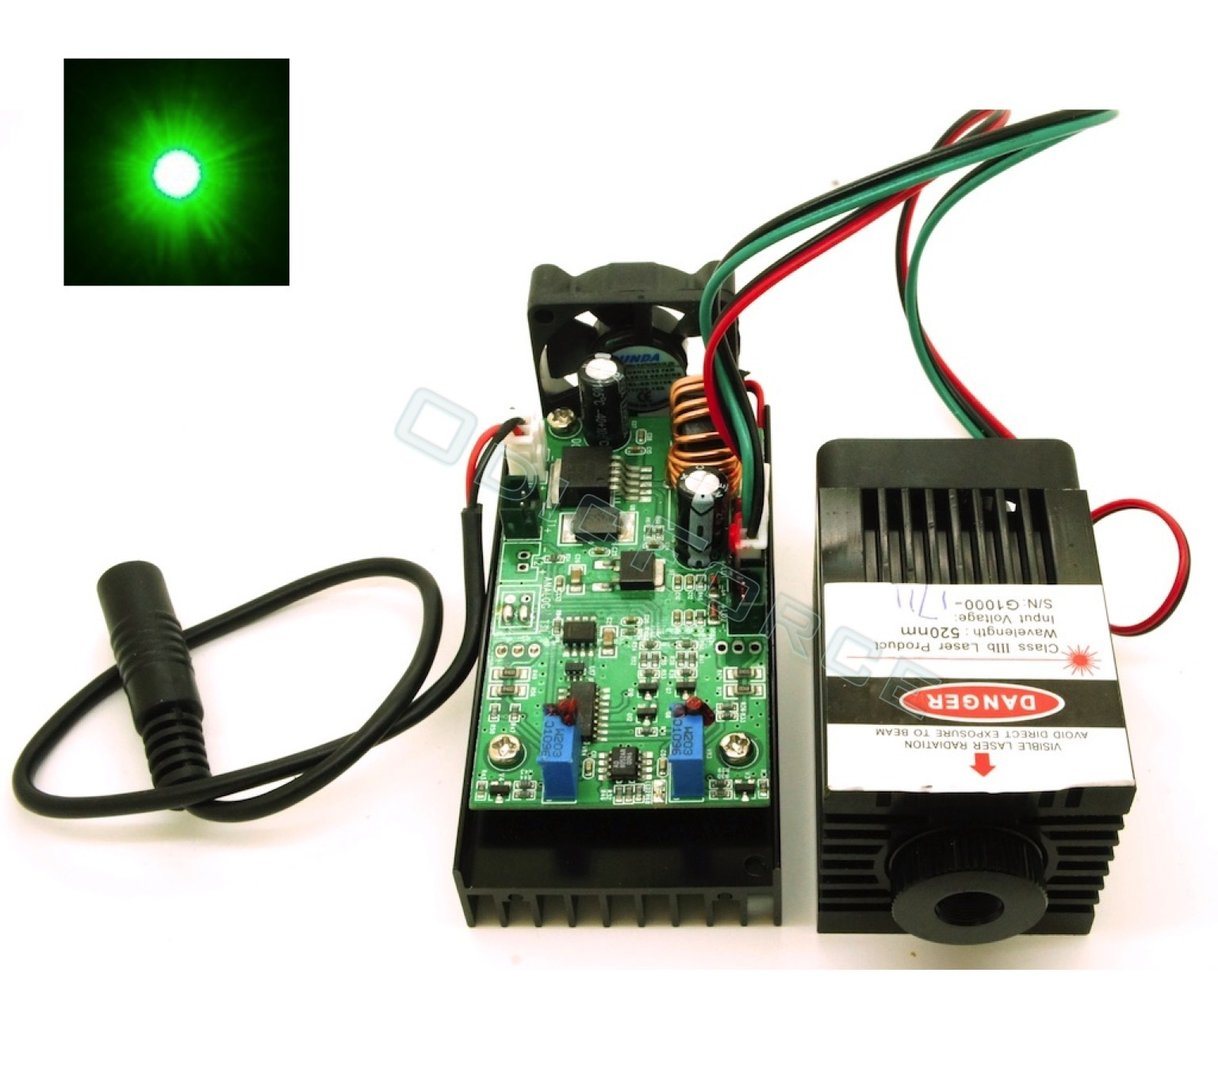 1000mW 520nm Direct Diode Green Laser Module with Adjustable Focus and TTL Modulation  (12V)